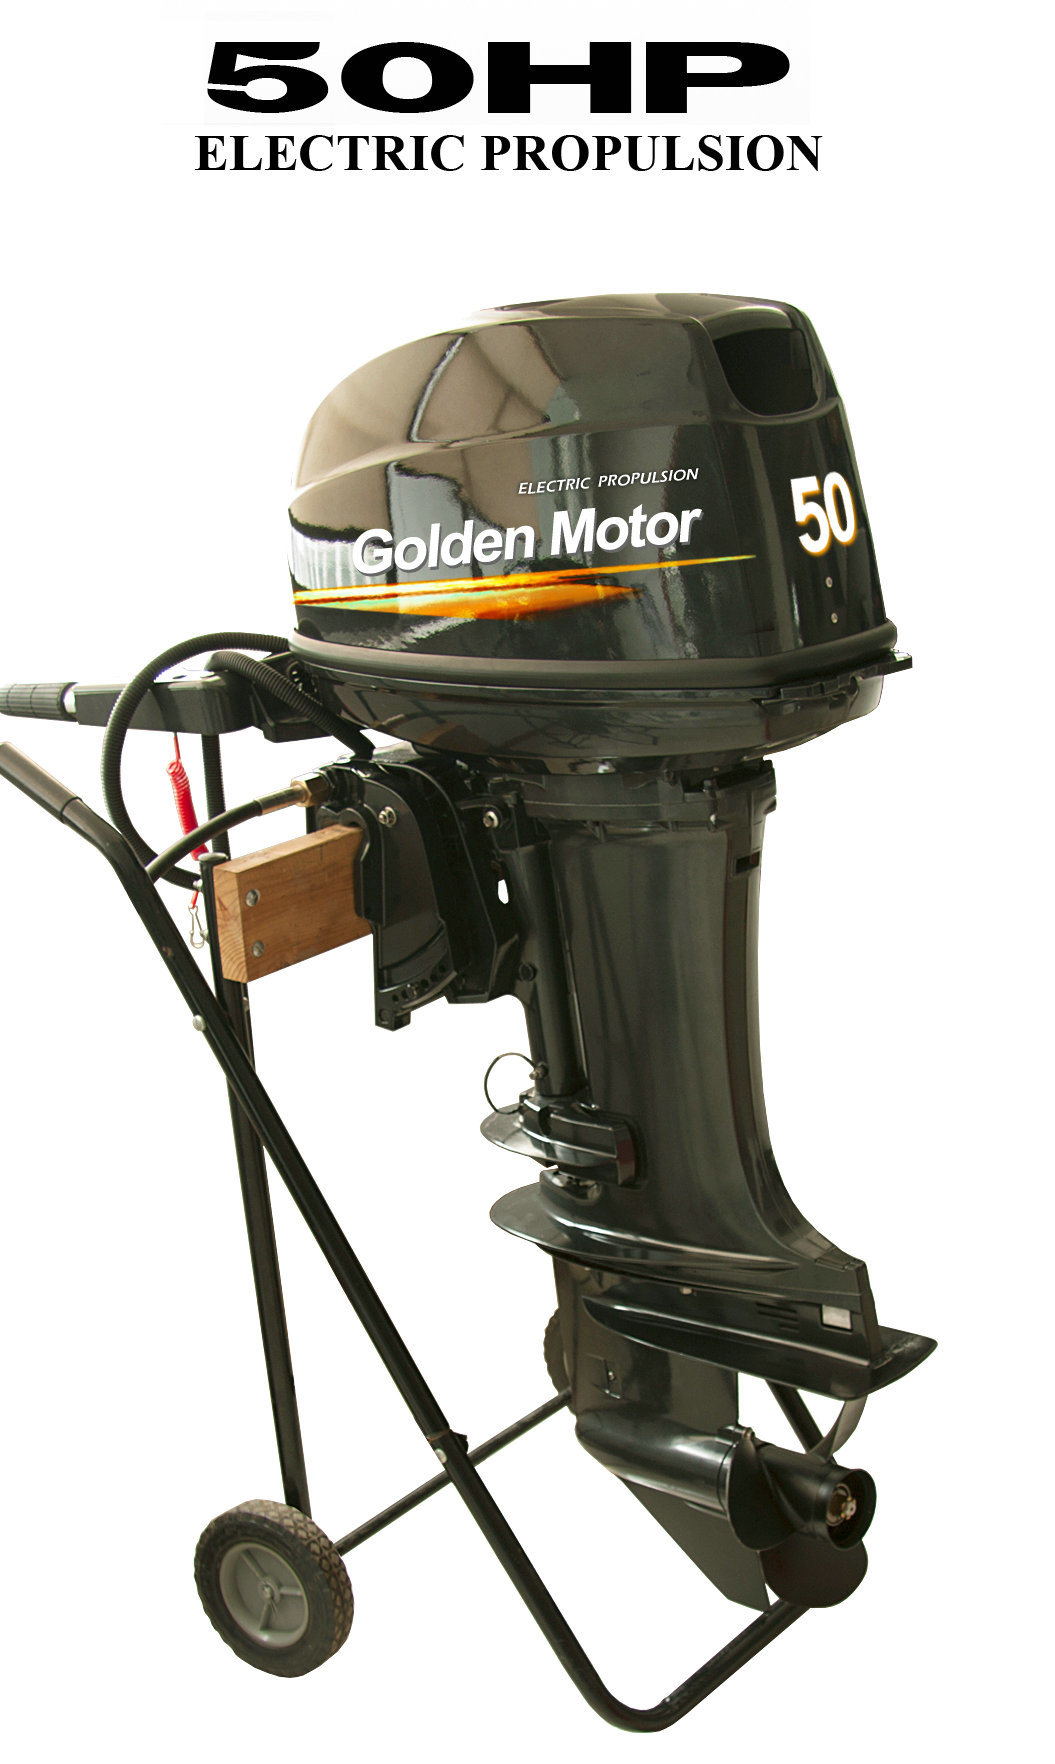 Ce 3HP/6HP/10HP/20HP/30HP /50HP Electric Propulsion Outboard Motor for Boat